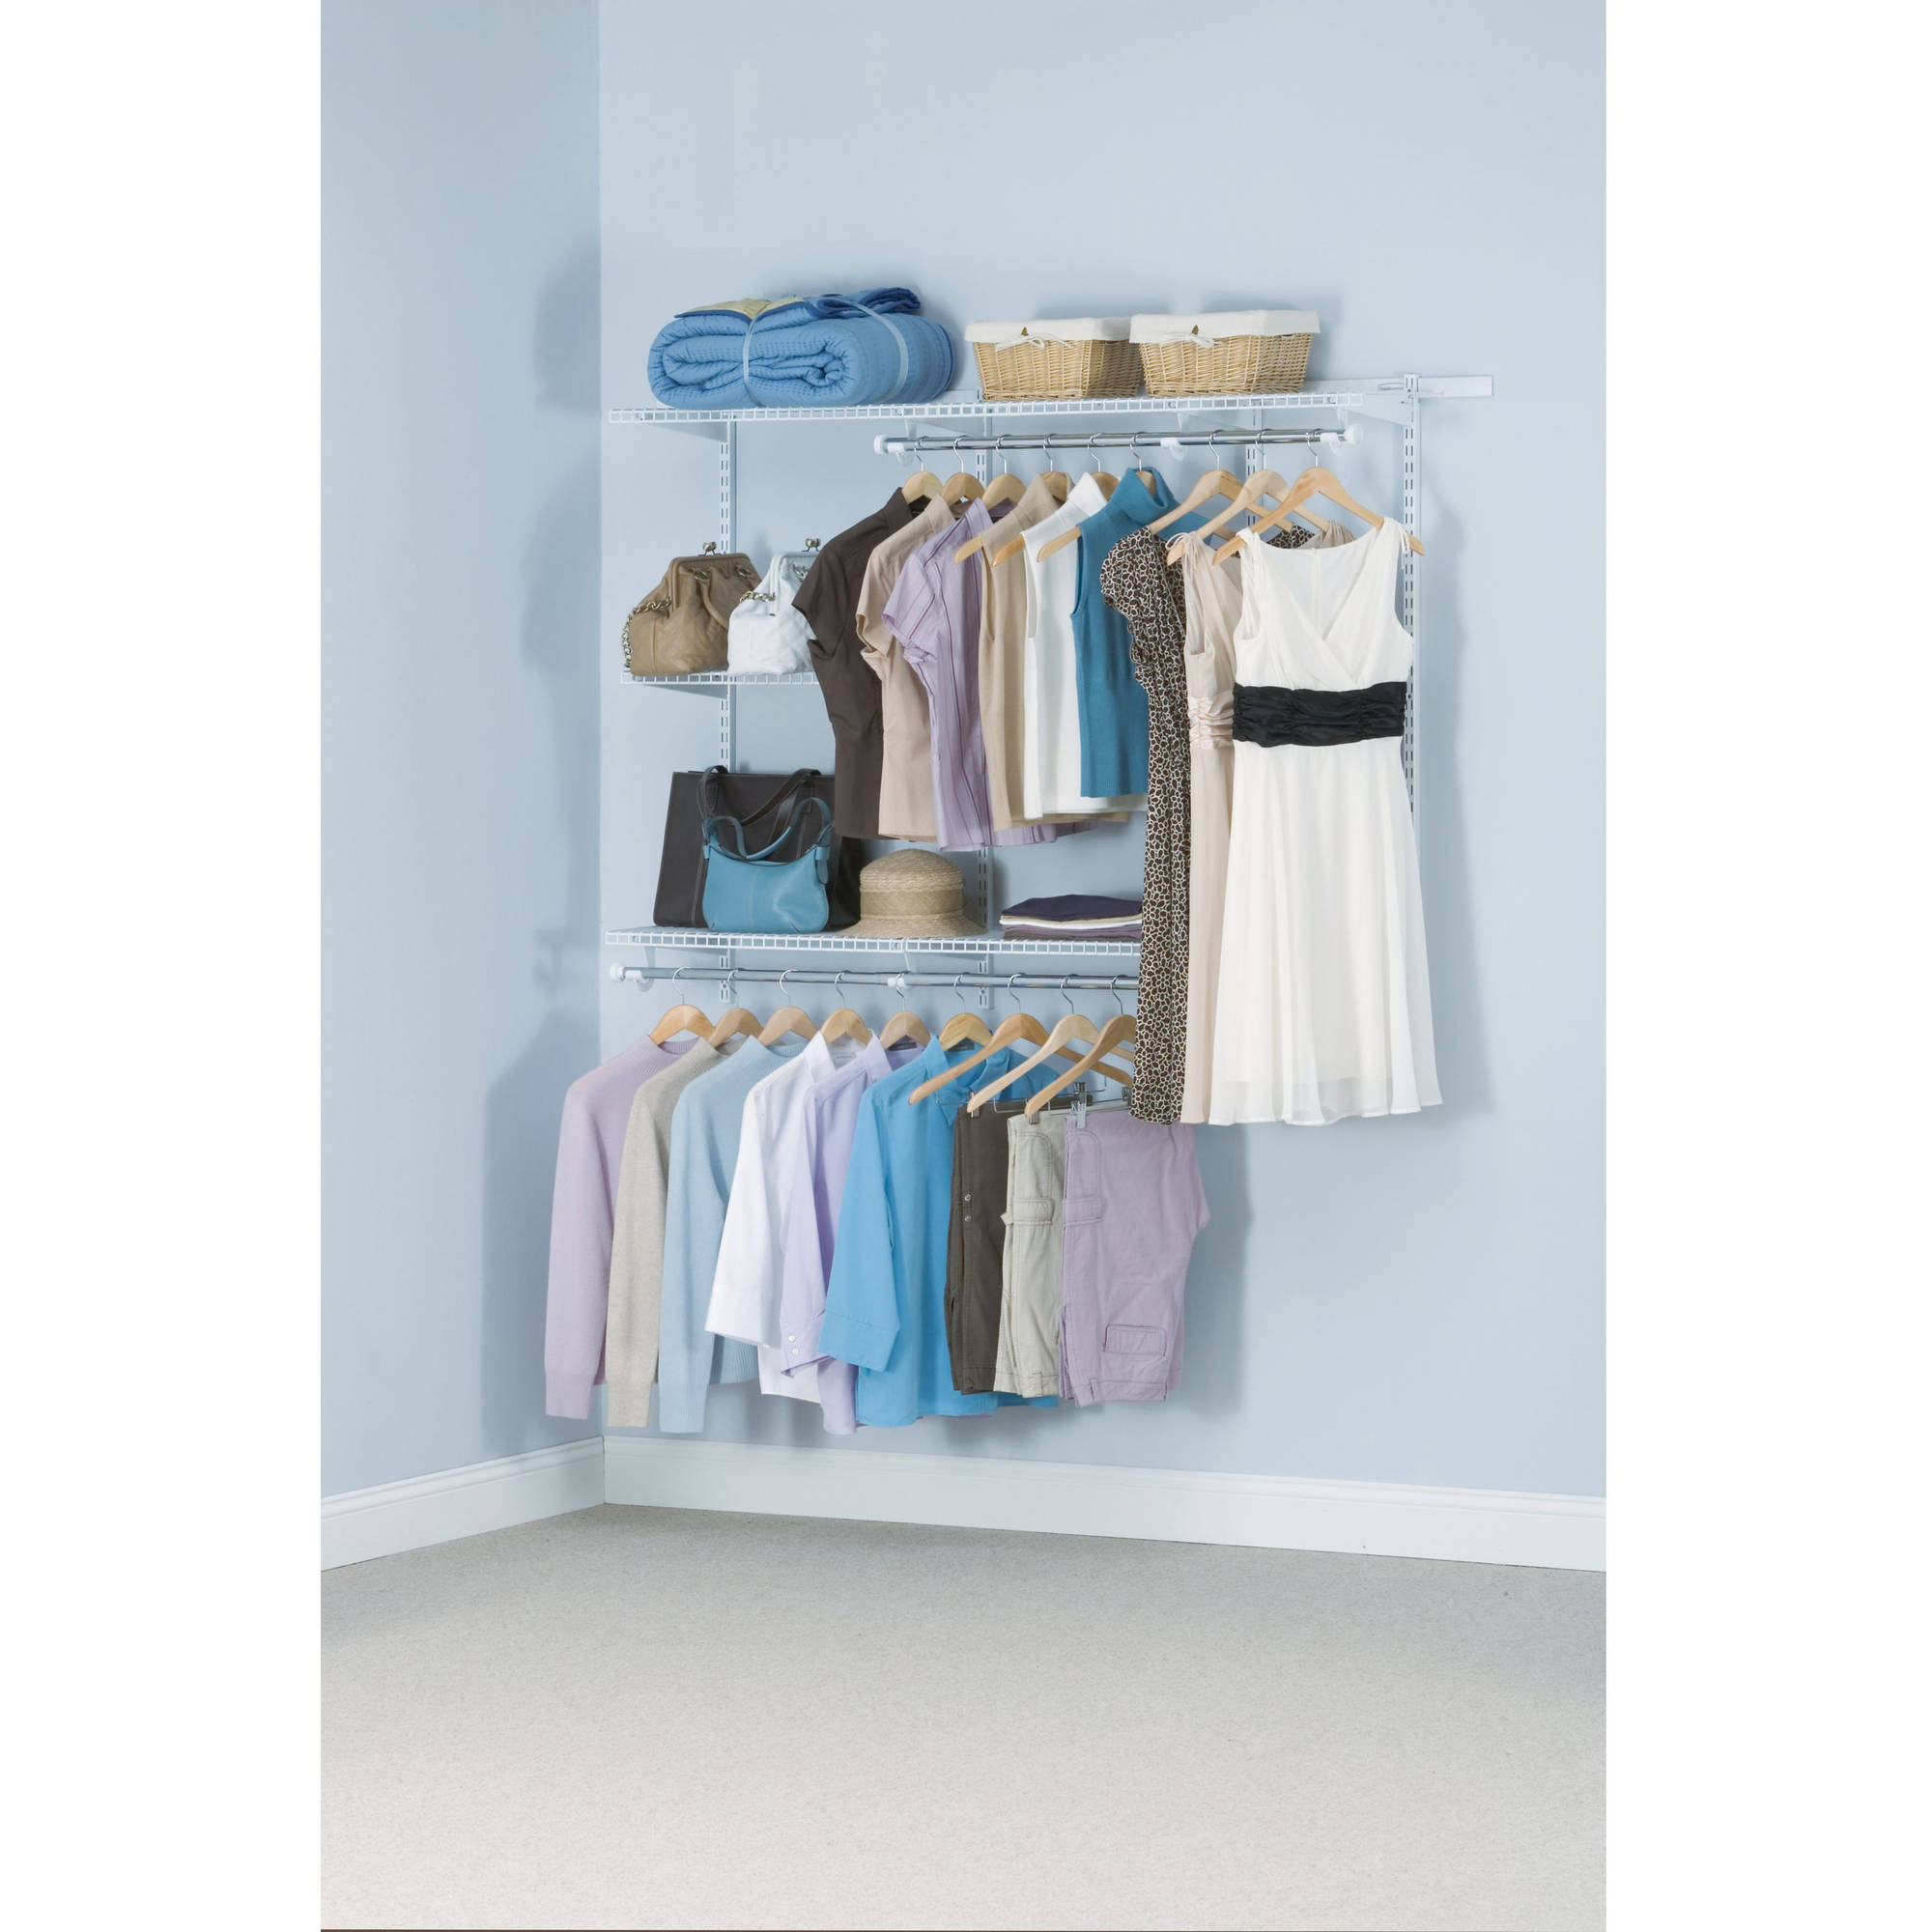 Rubbermaid Customizable and Configurable 3u0027 to 6u0027 Closet Kit, Titanium -  Walmart.com